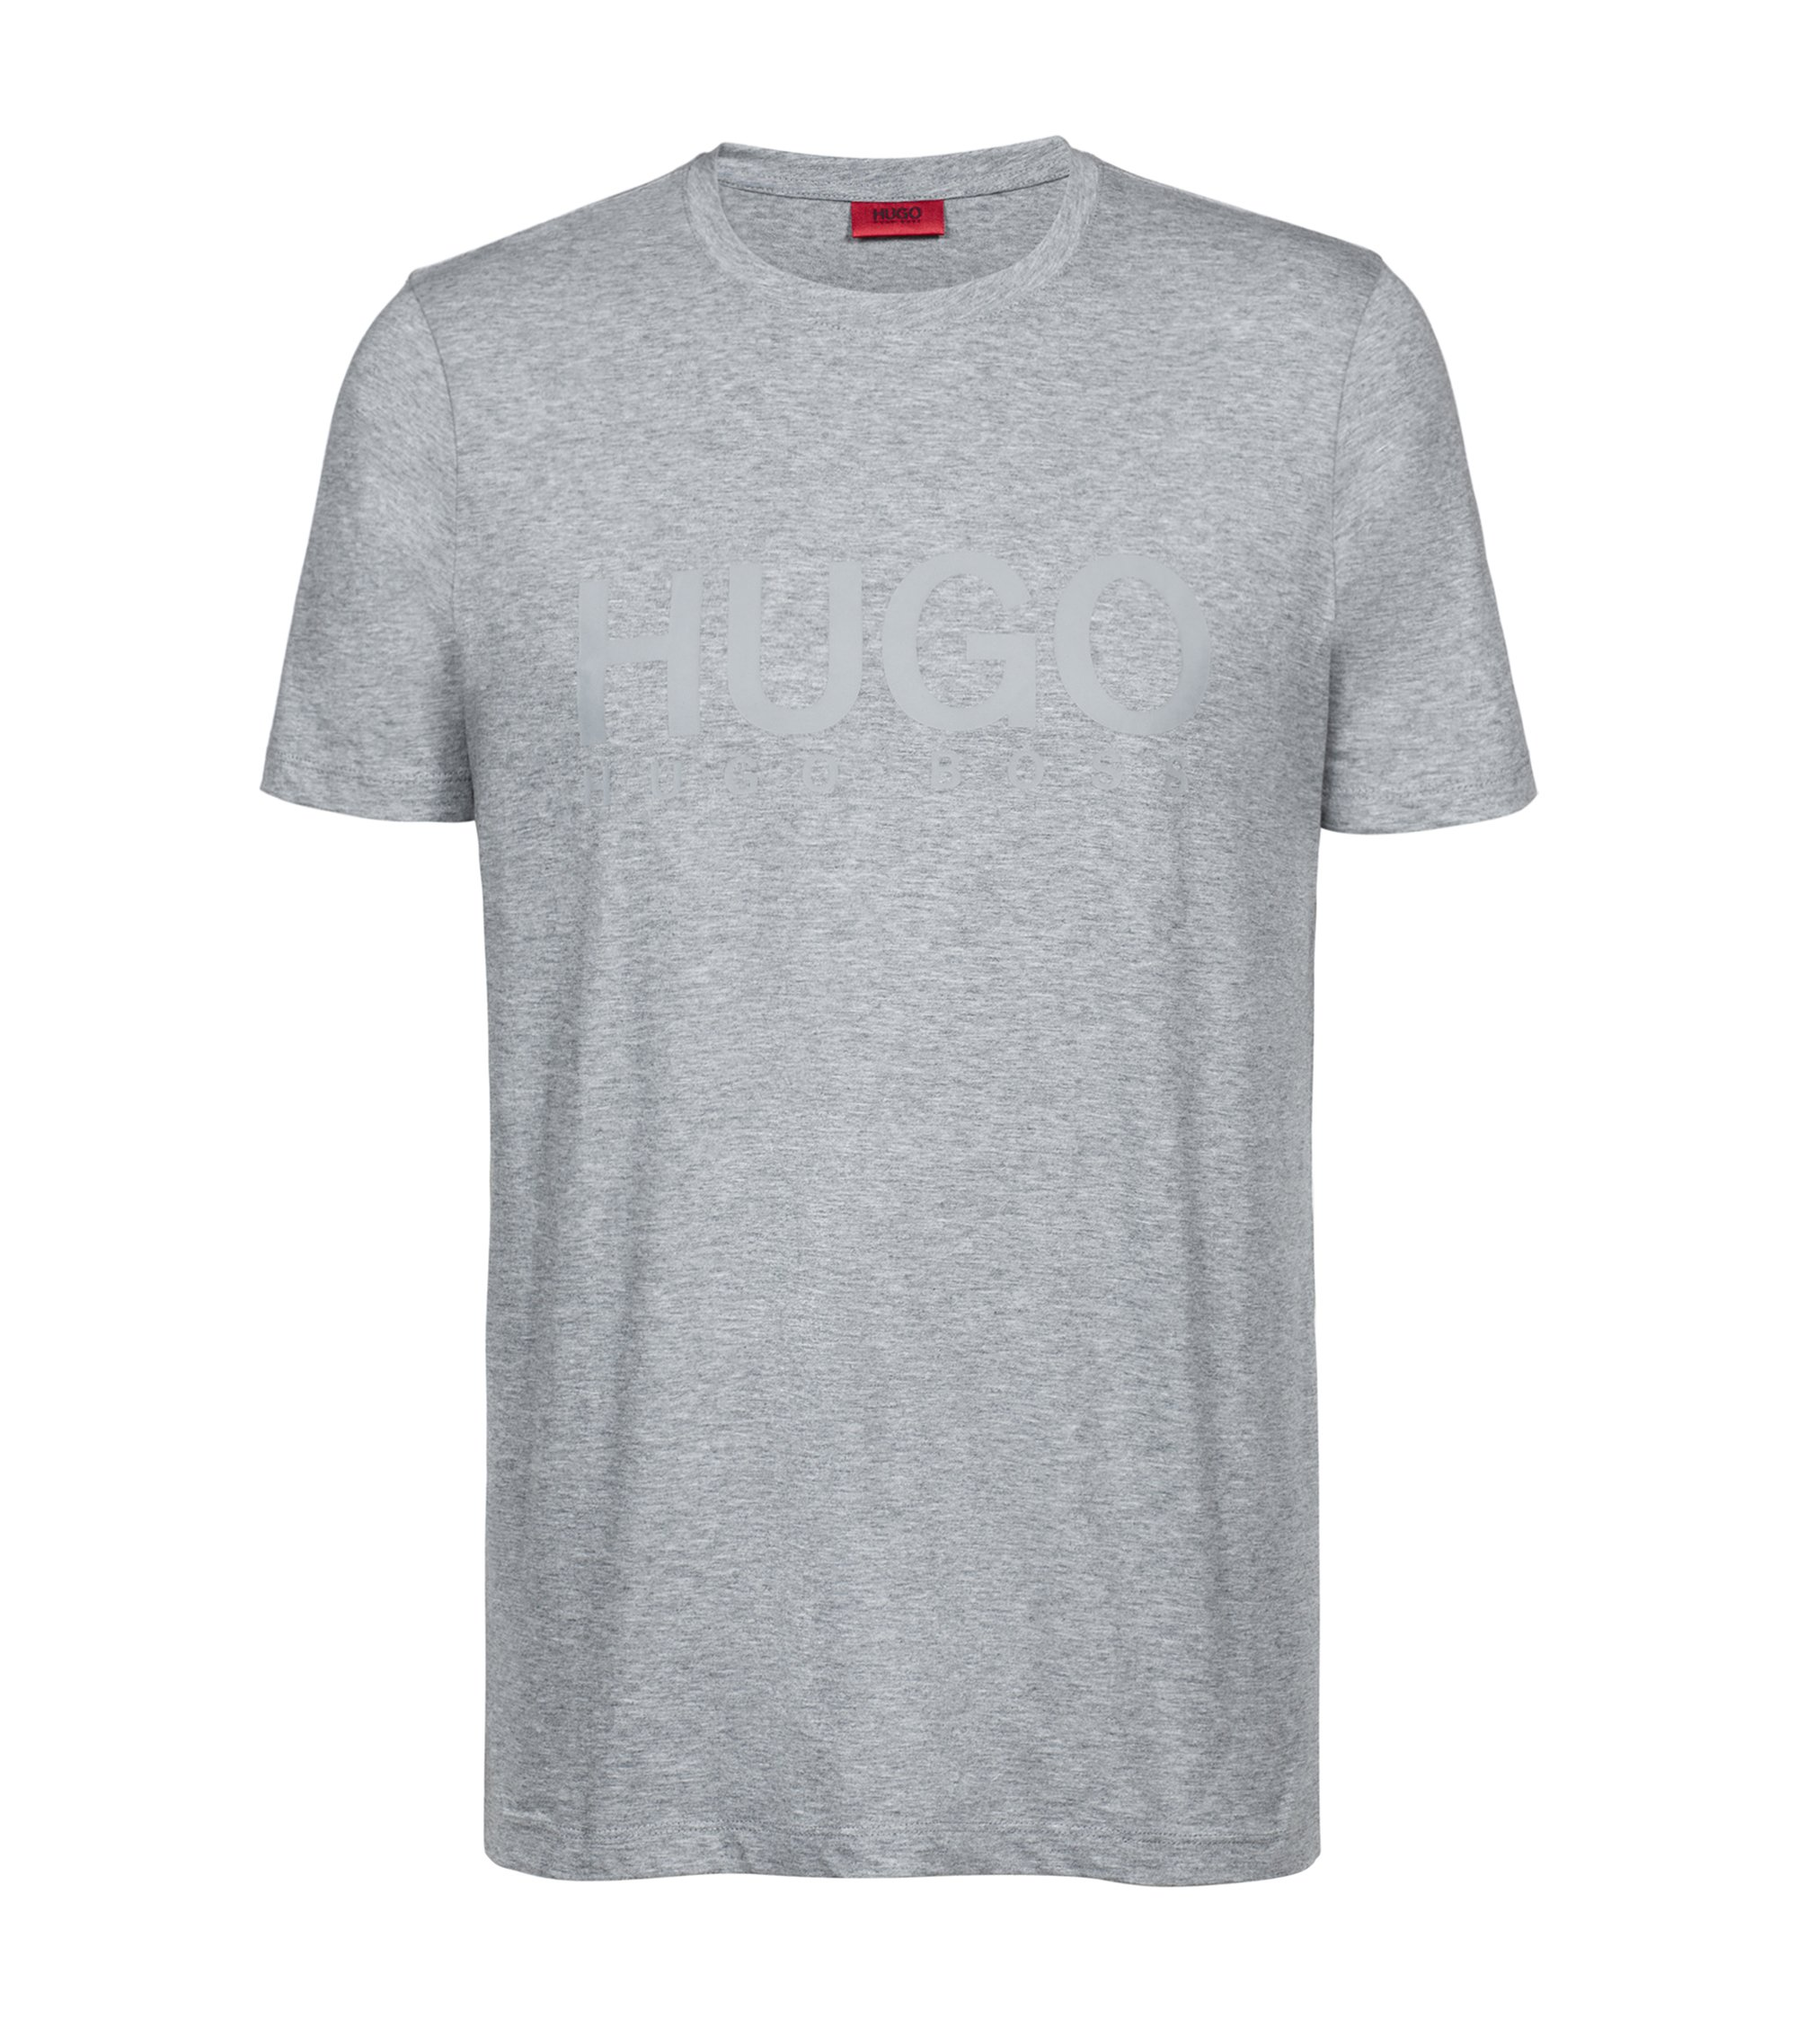 T-Shirt aus Single Jersey mit Logo, Grau